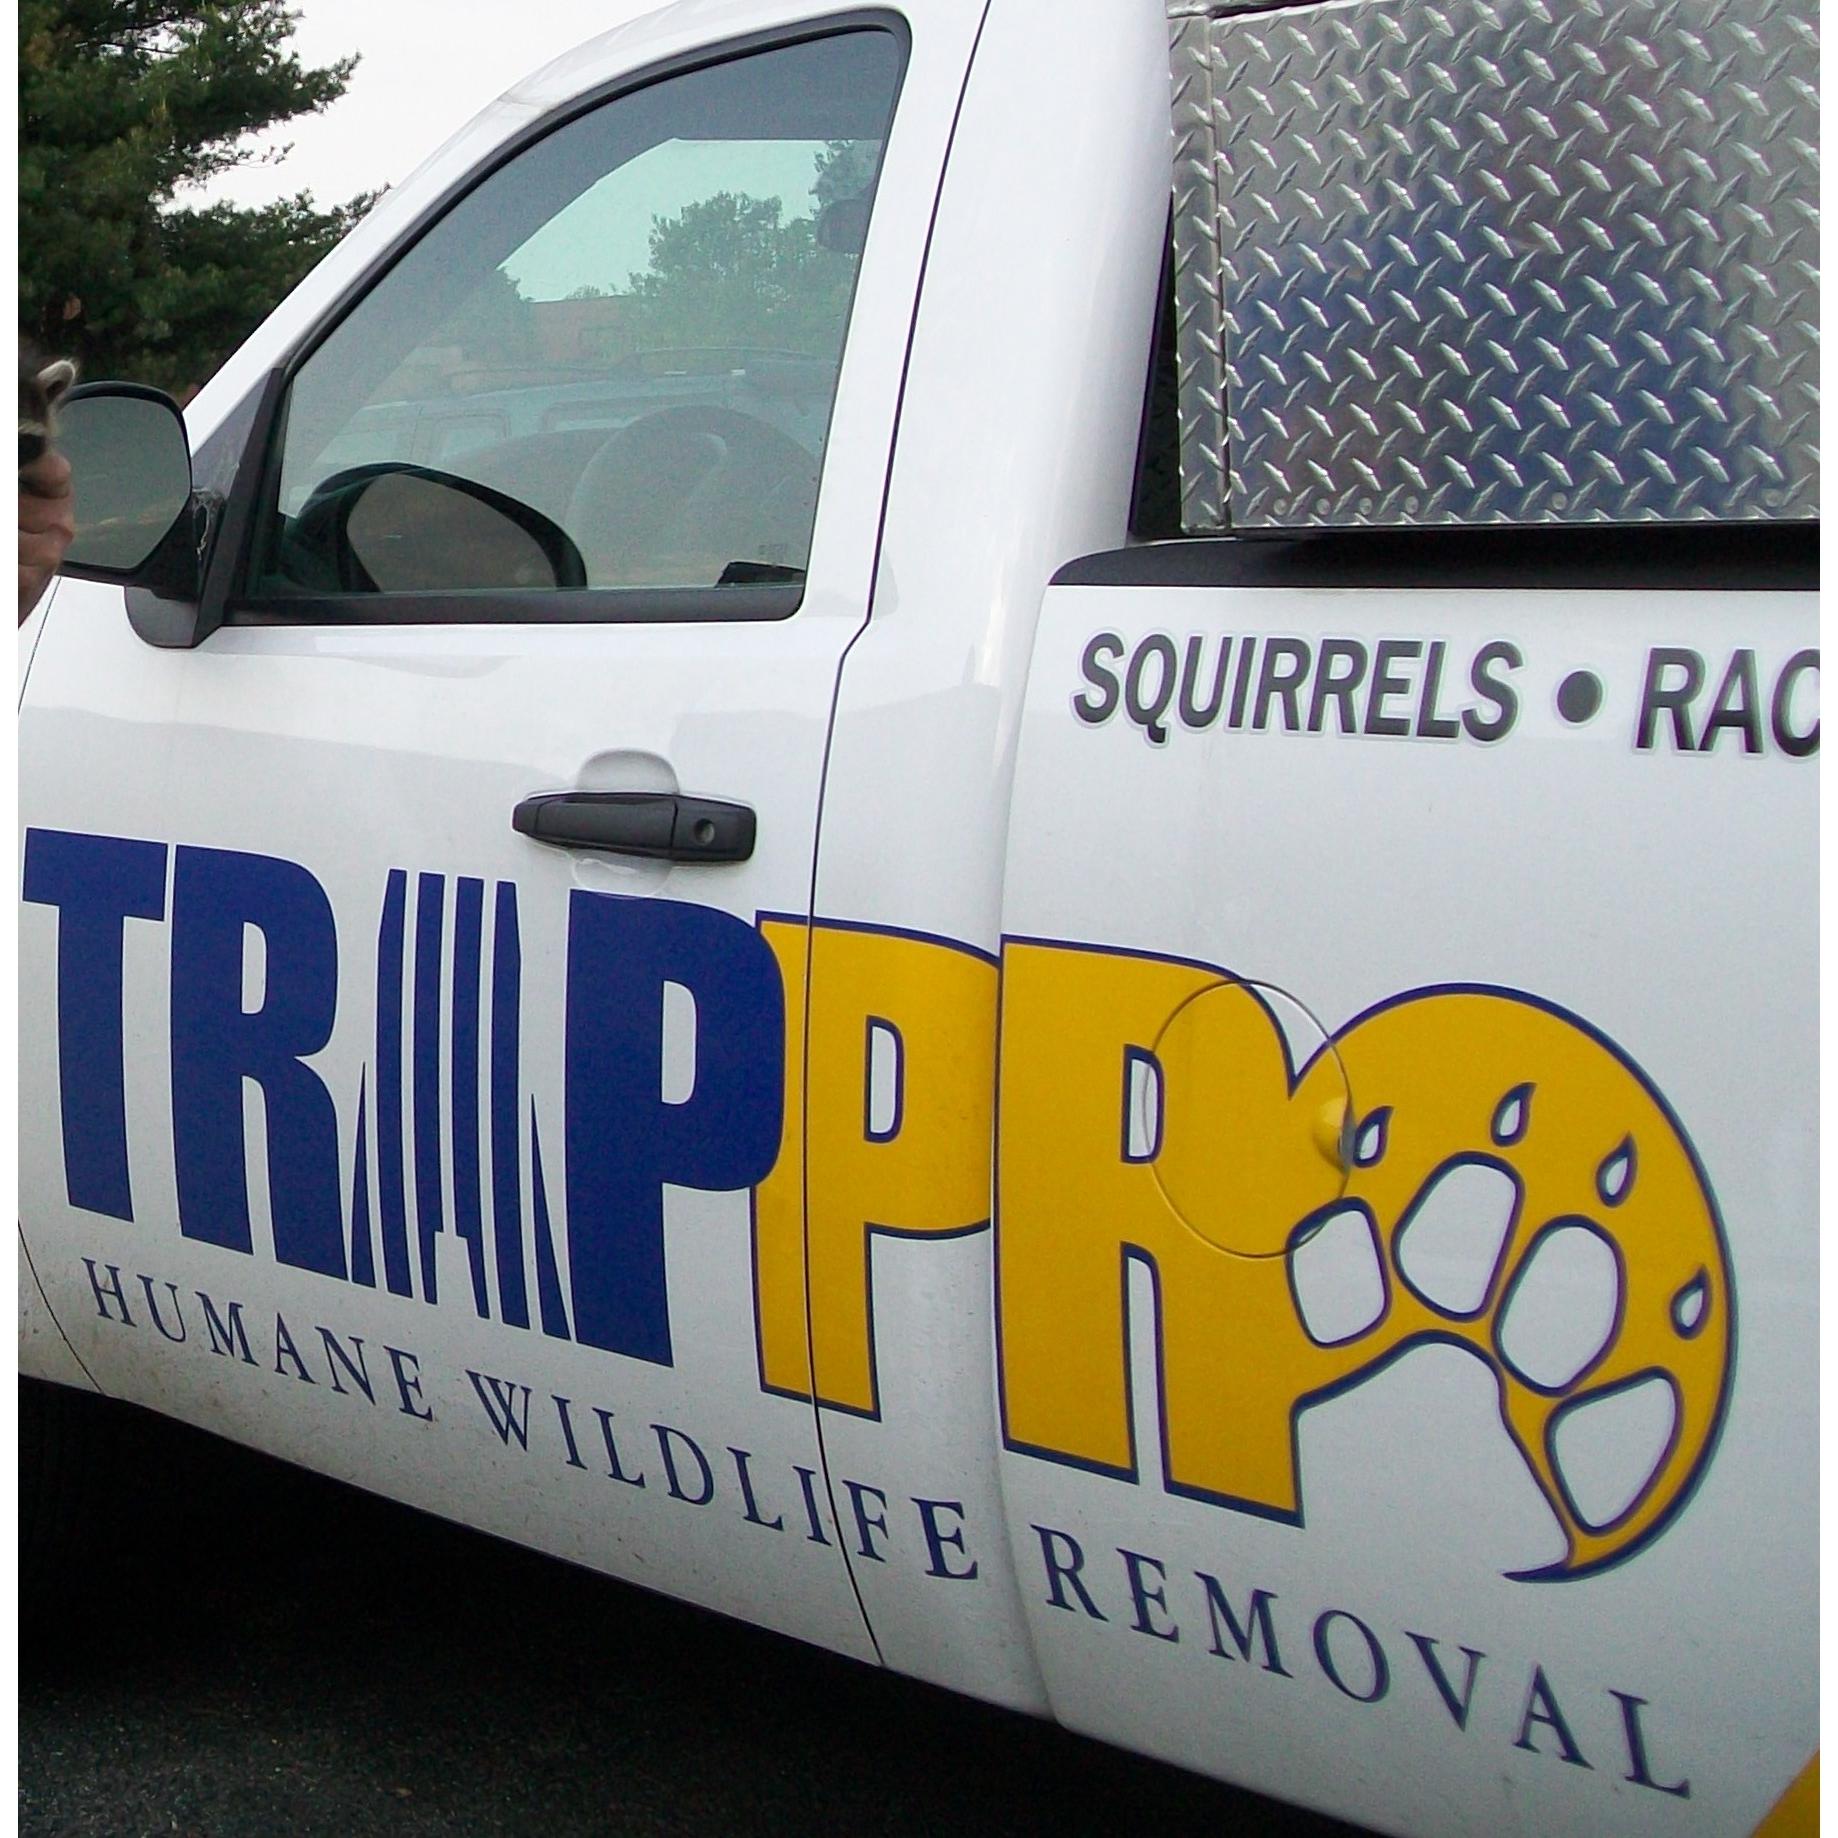 Animal Control Service in MD Crofton 21114 Trappro 2125 Baldwin Ave #40  (800)651-8727